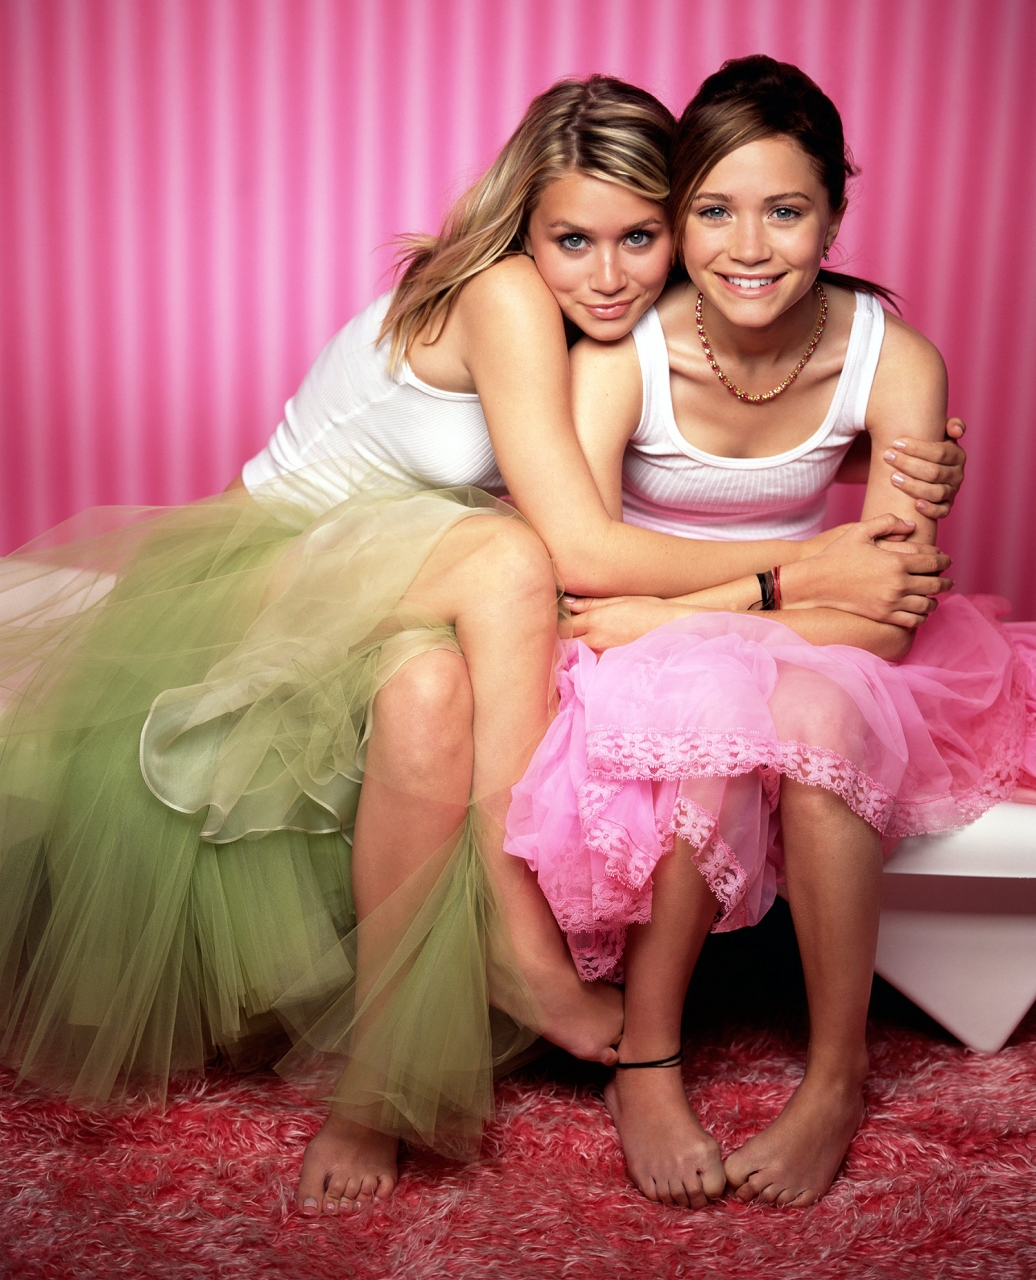 Are not olsen twins nude fake real